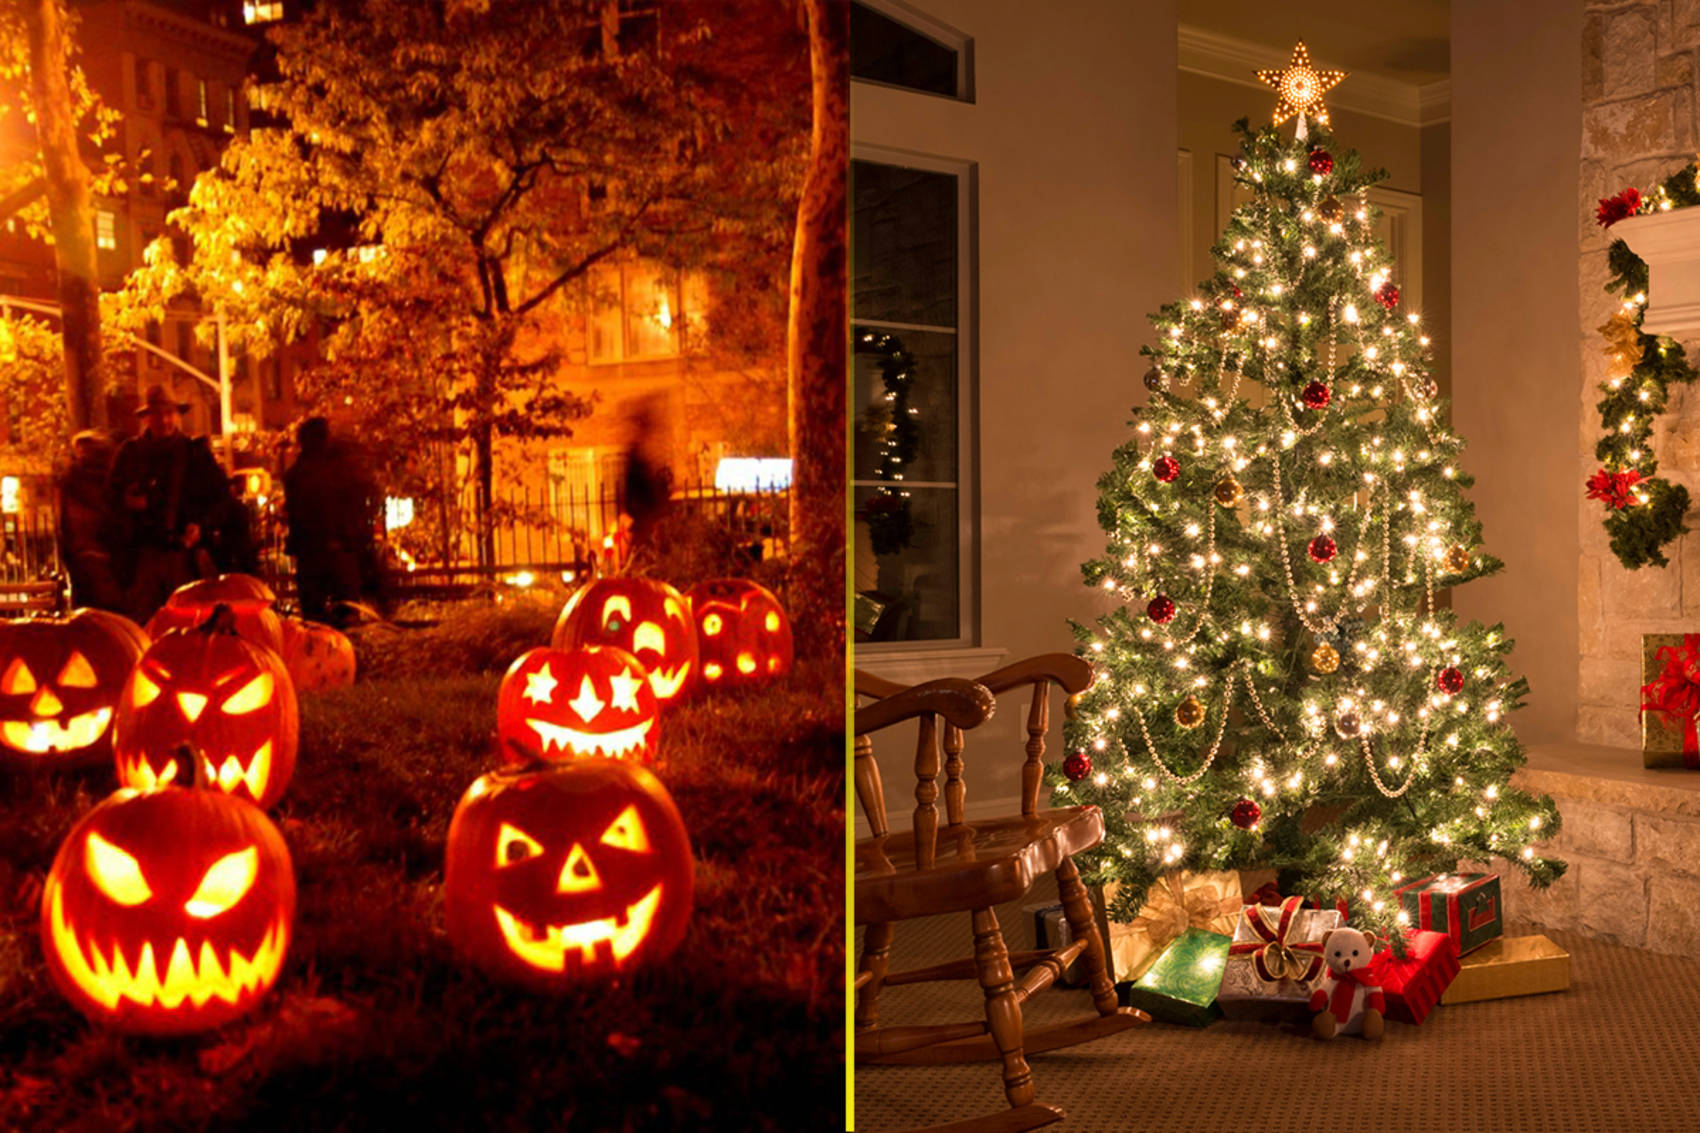 6 Reasons Why Christmas Is Better Than Halloween